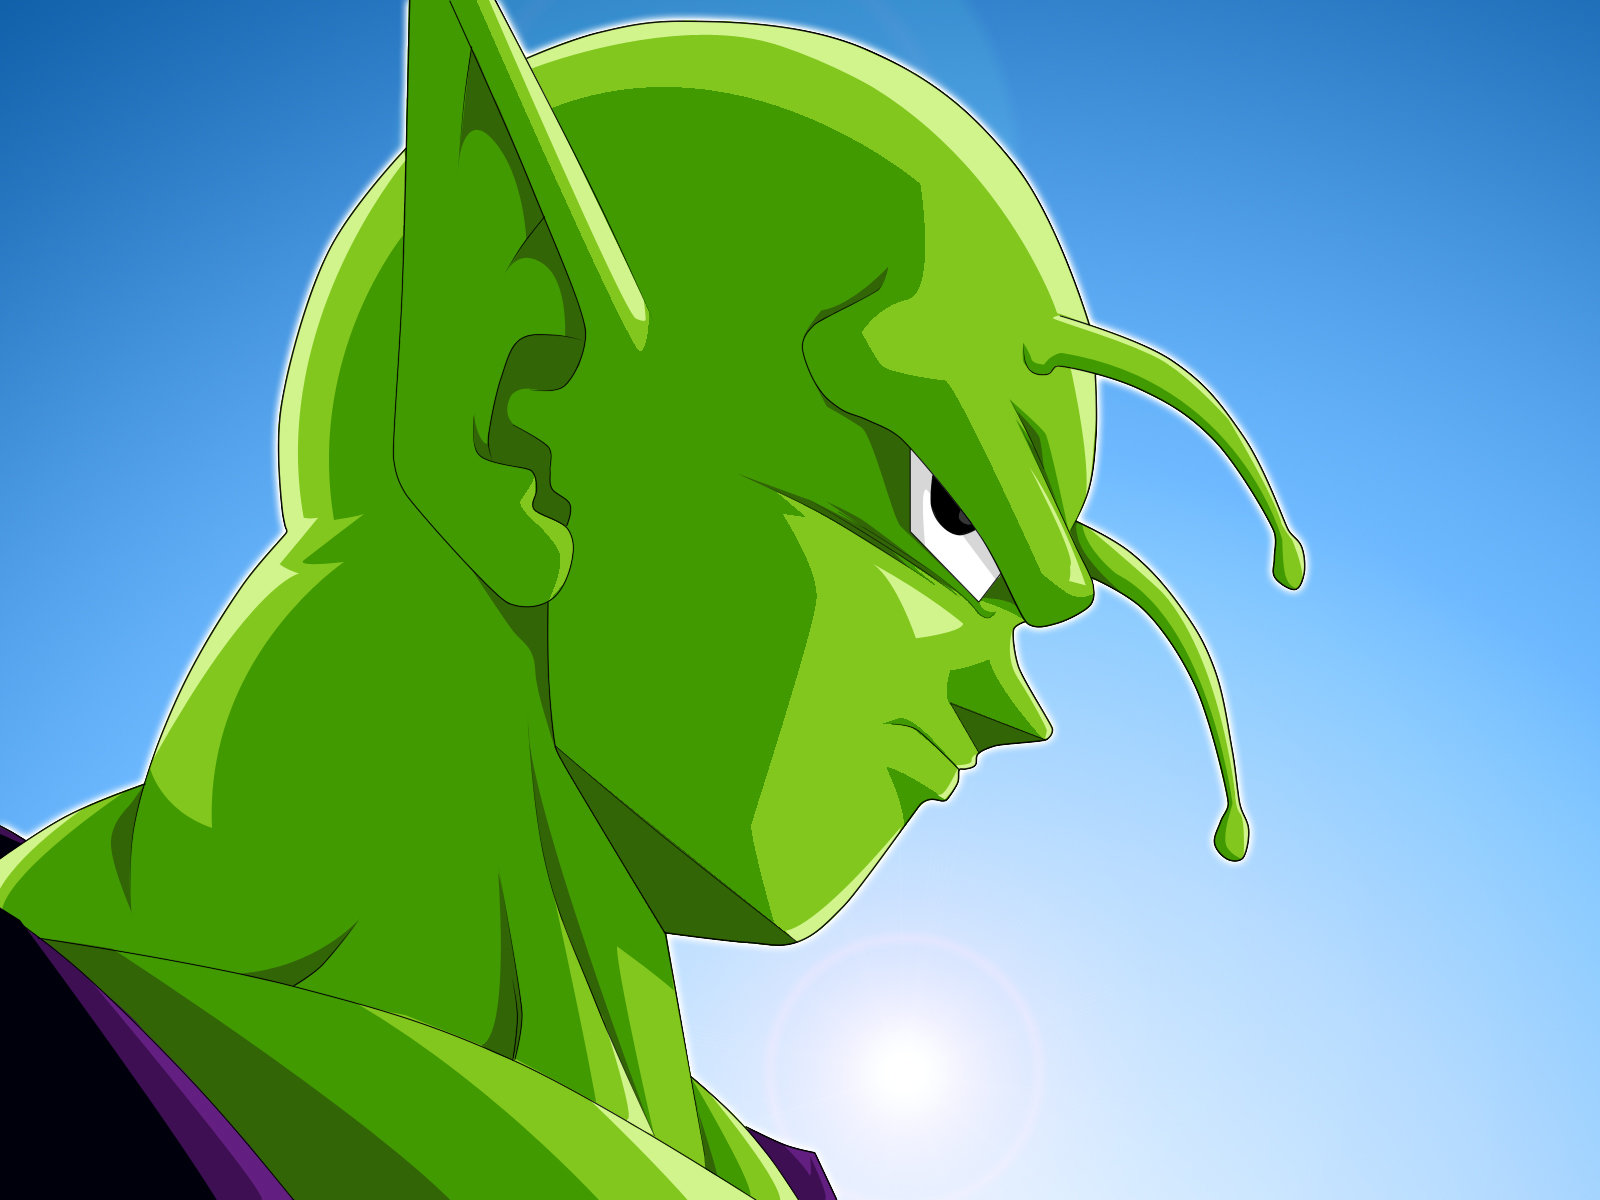 High resolution Piccolo (Dragon Ball) hd 1600x1200 background ID:462015 for computer